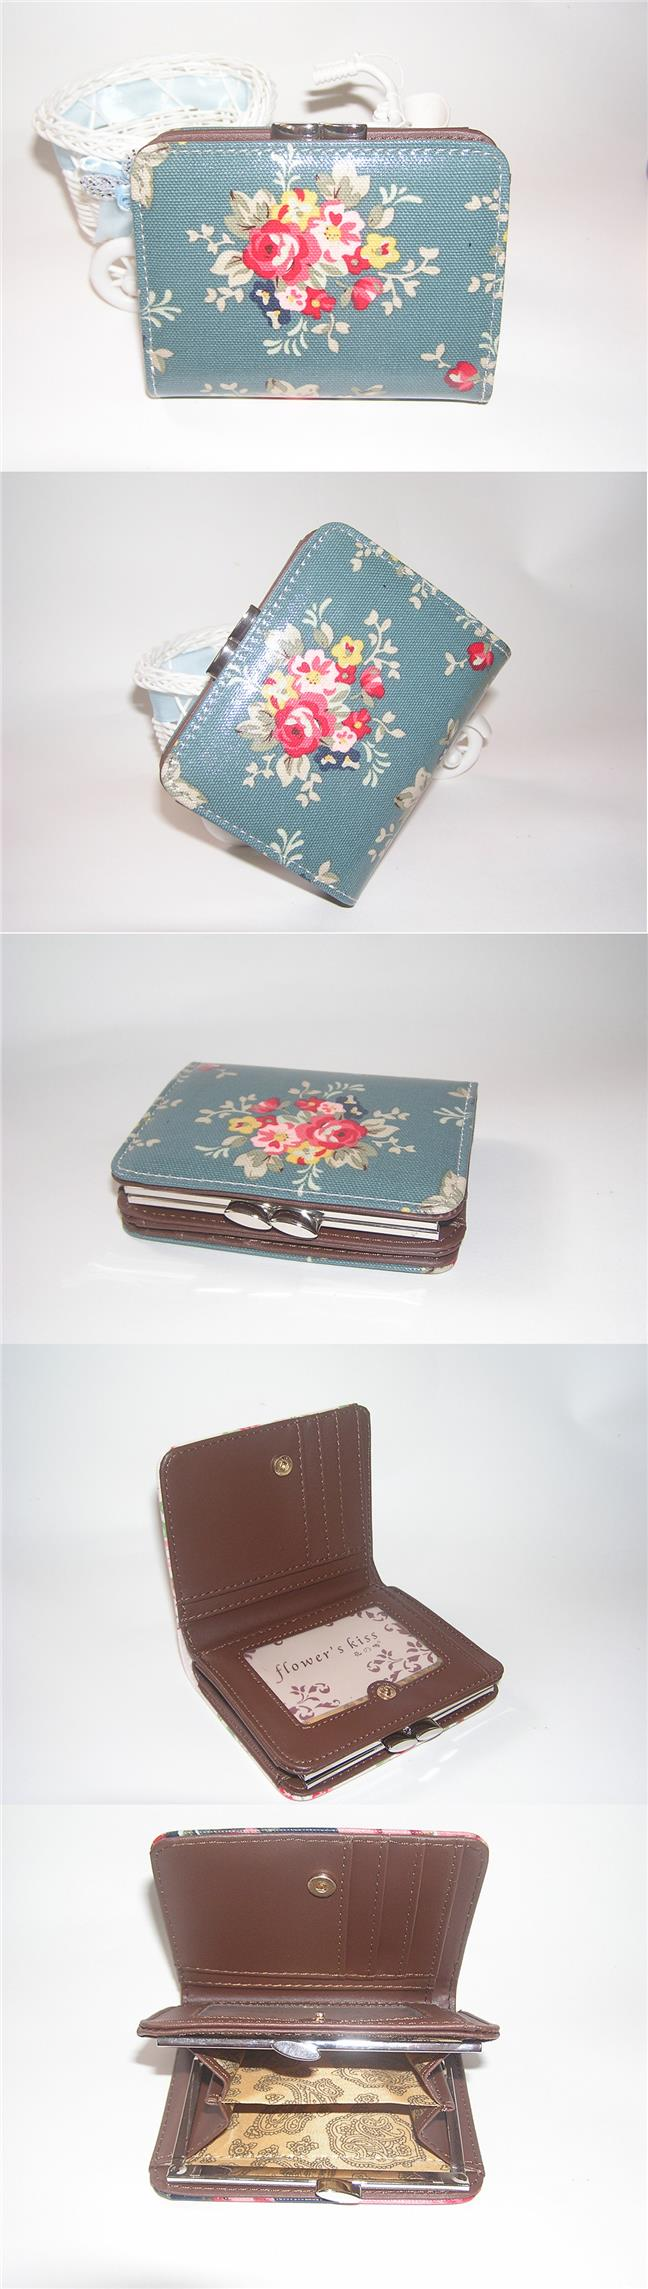 Fashion Short Wallet Classic Flower Printing Small Handbag - S071